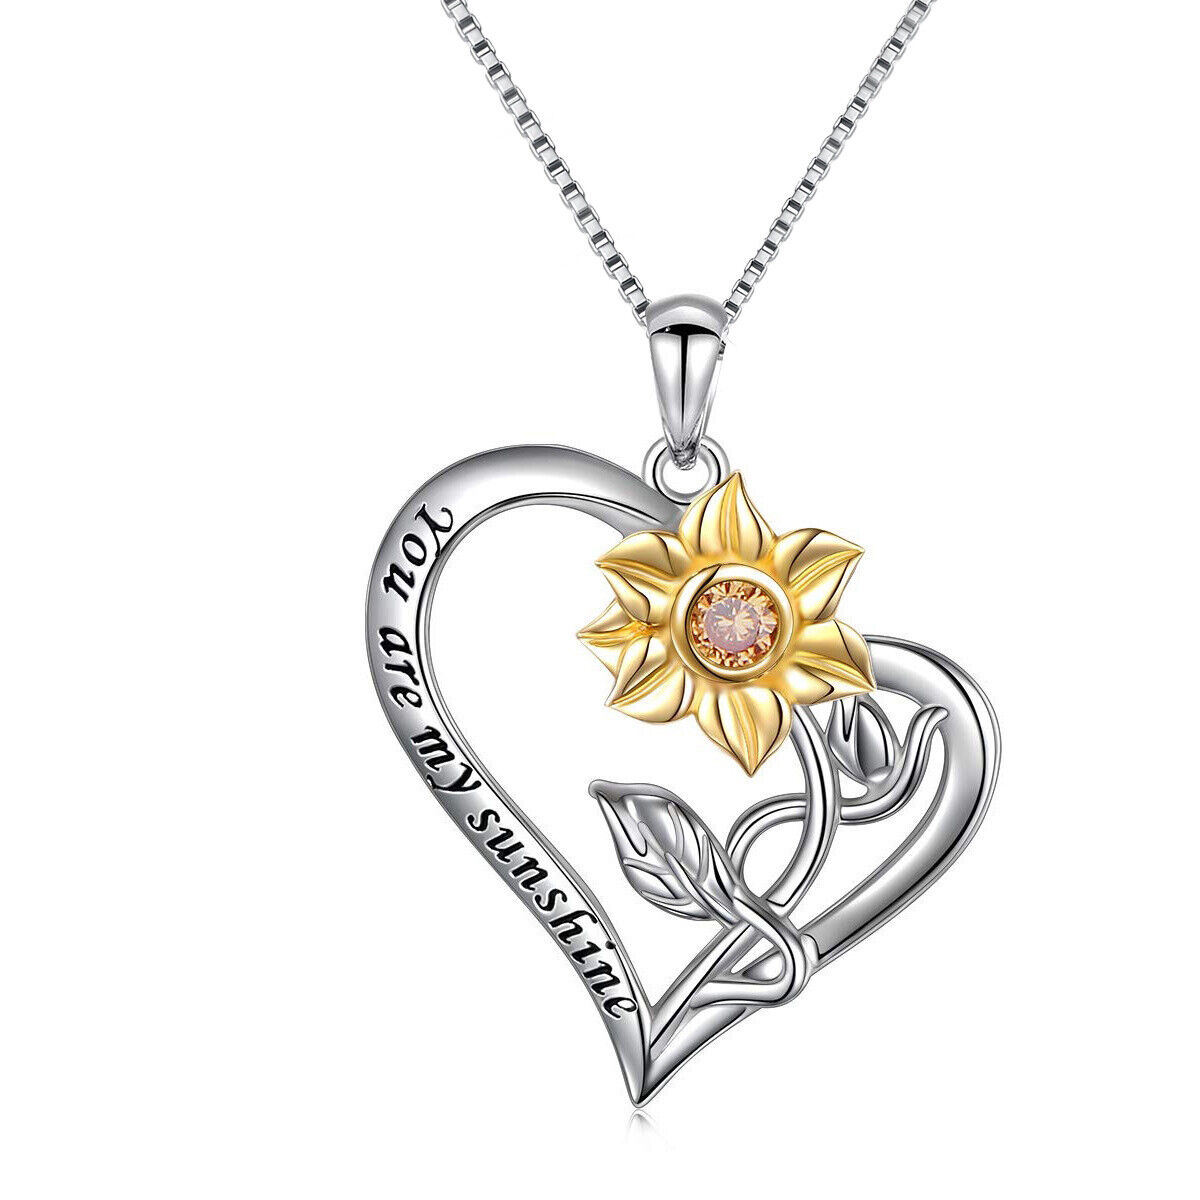 Graduation Gift S925 Sterling Silver You Are My Sunshine Sunflower Necklace